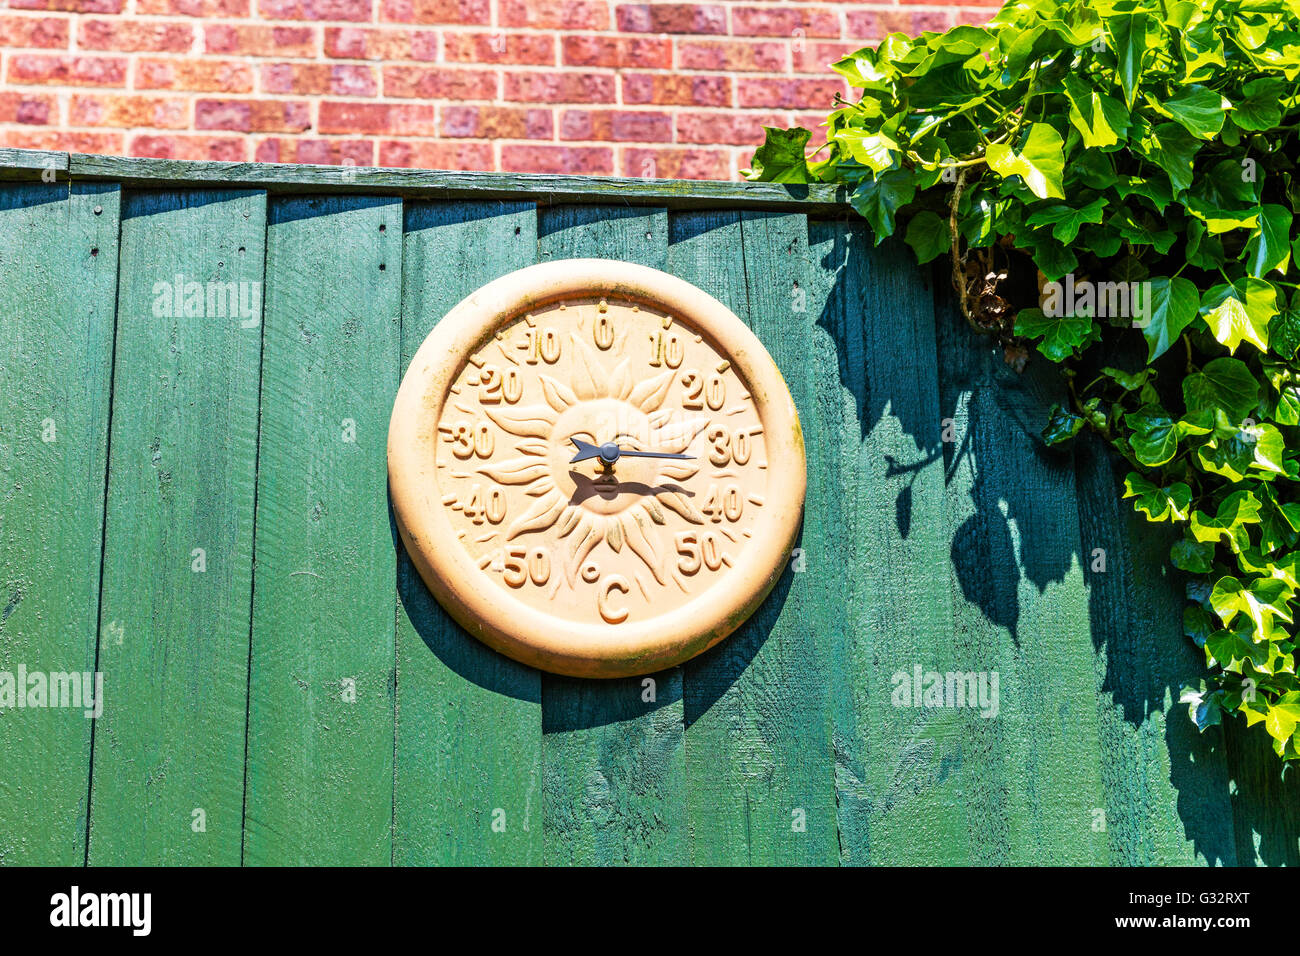 Garden Thermometer Showing 30 + Degrees Temperature Celsius In UK Summer  Hot Scorching Heat Sunny